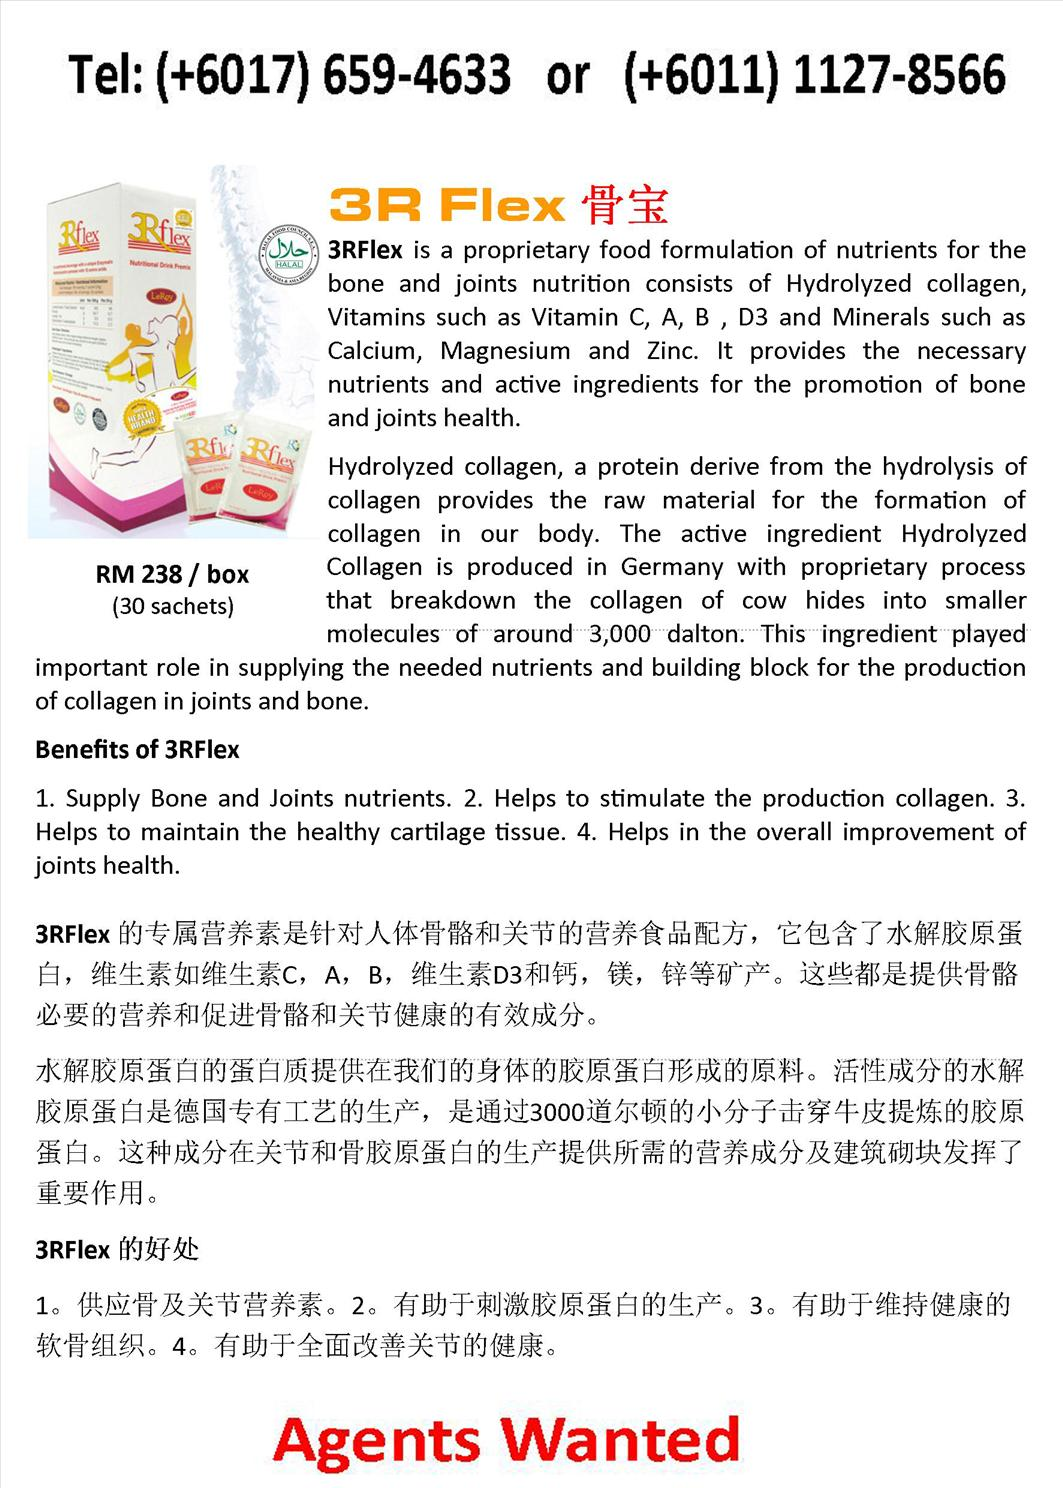 3R Flex Hydrolyzed Collagen